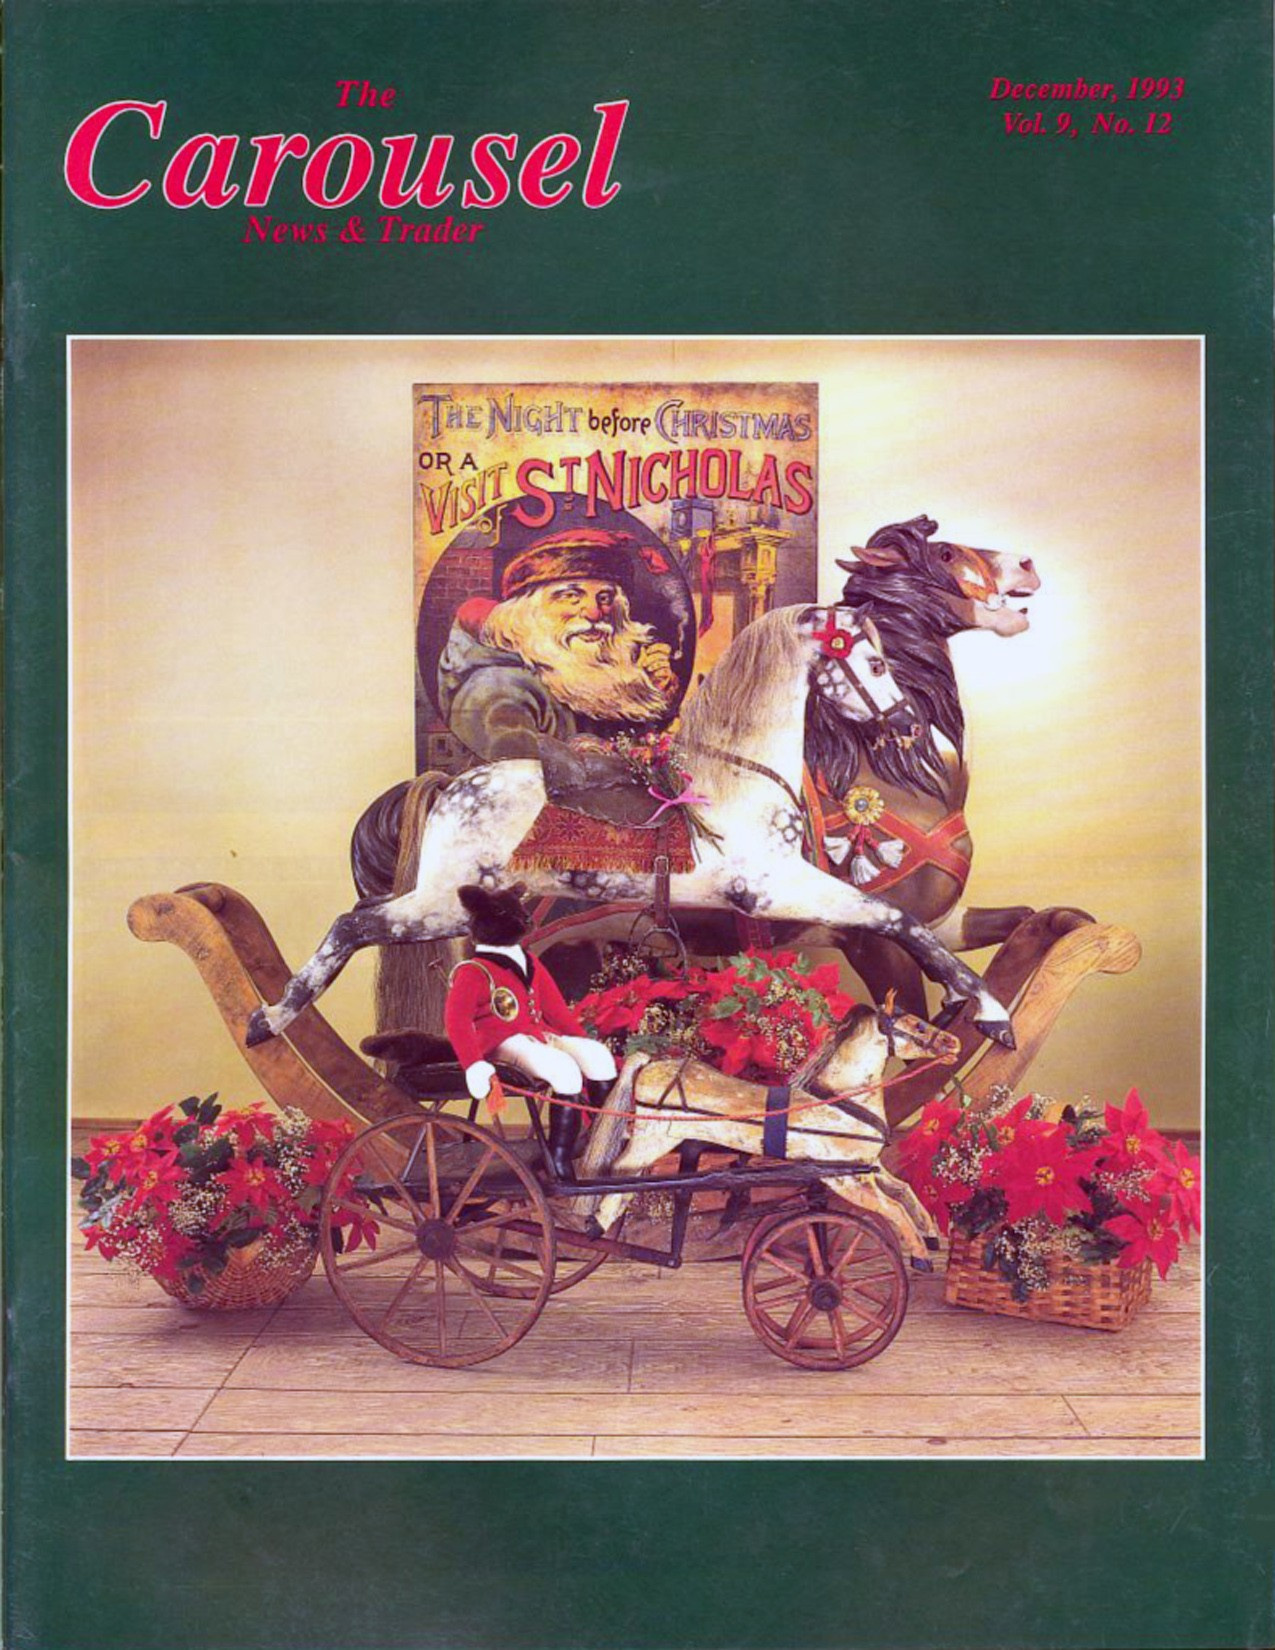 cnt_12_1993-Tony-Orlando-Muller-bow-rocker-holiday-cover